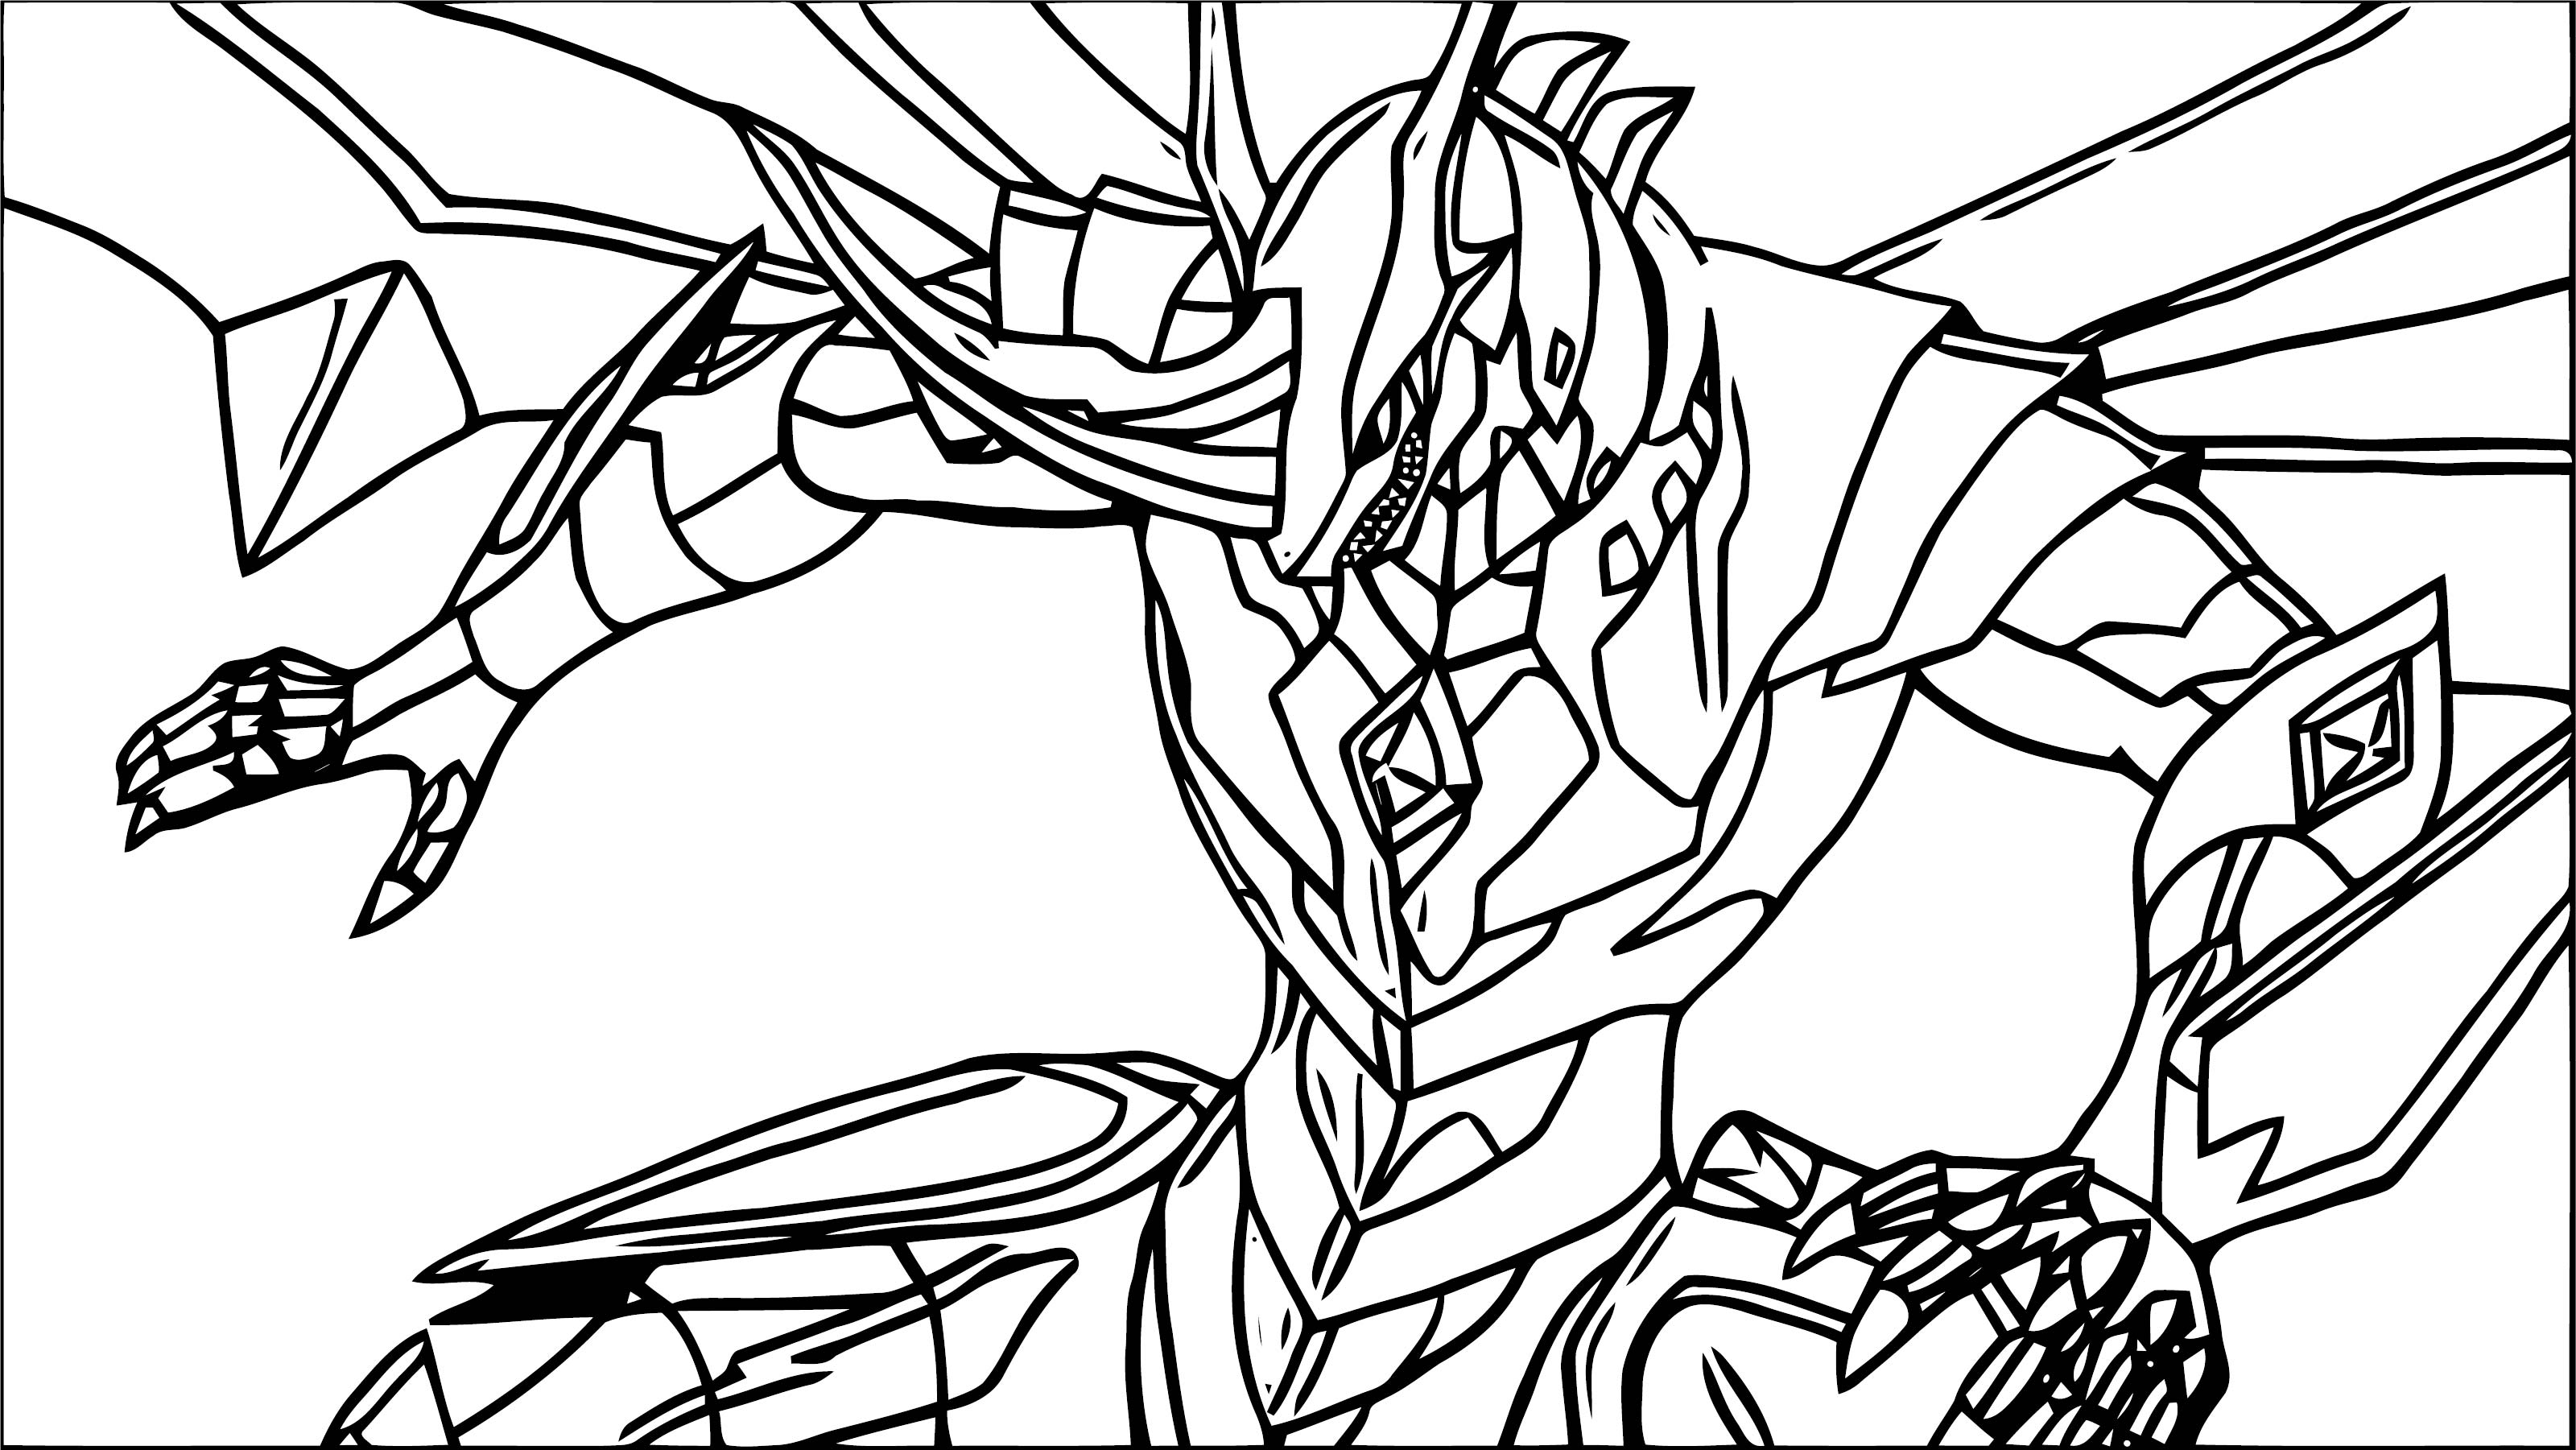 bakugan titanium dragonoid coloring pages - photo#13